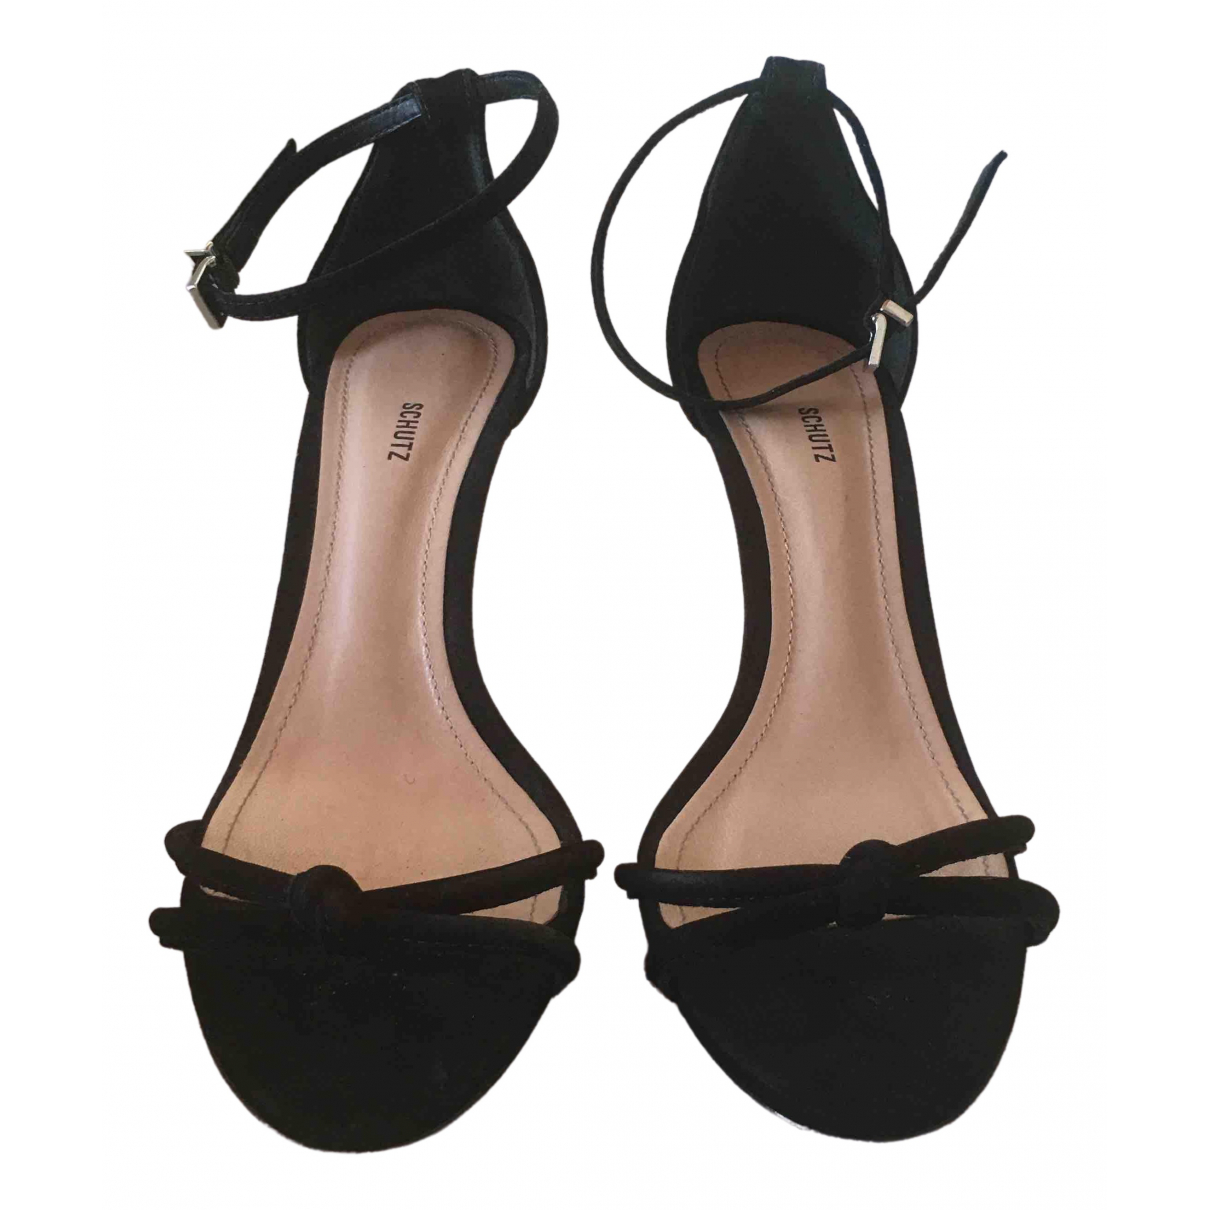 Schutz \N Black Suede Sandals for Women 7.5 US